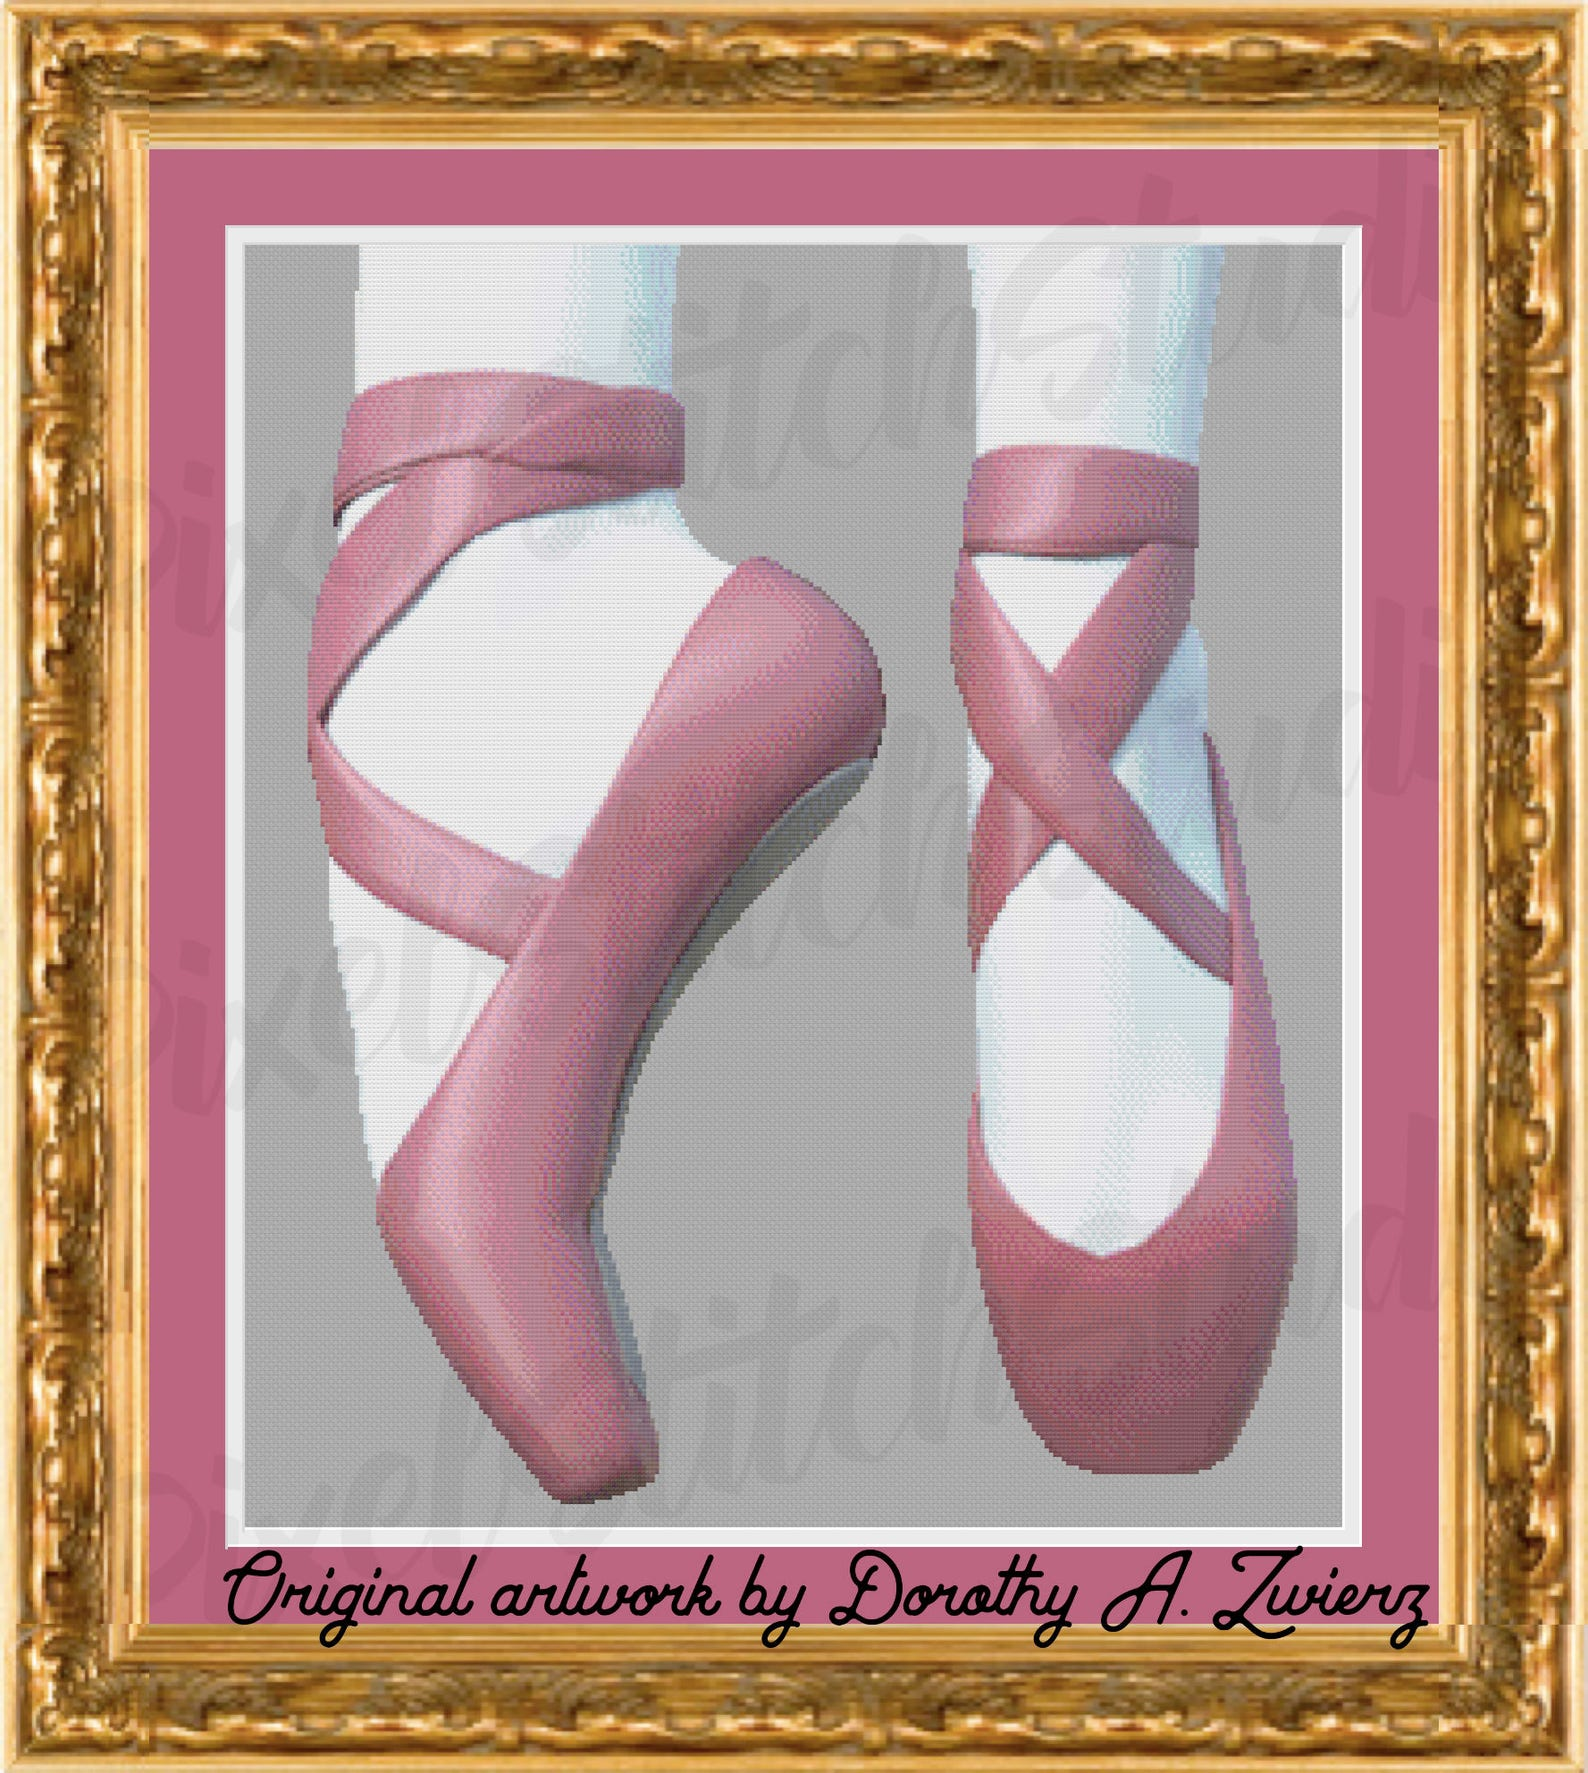 ballet slippers, pink dancing shoes, up on your toes, classic ballerina instant digital download counted cross stitch pattern